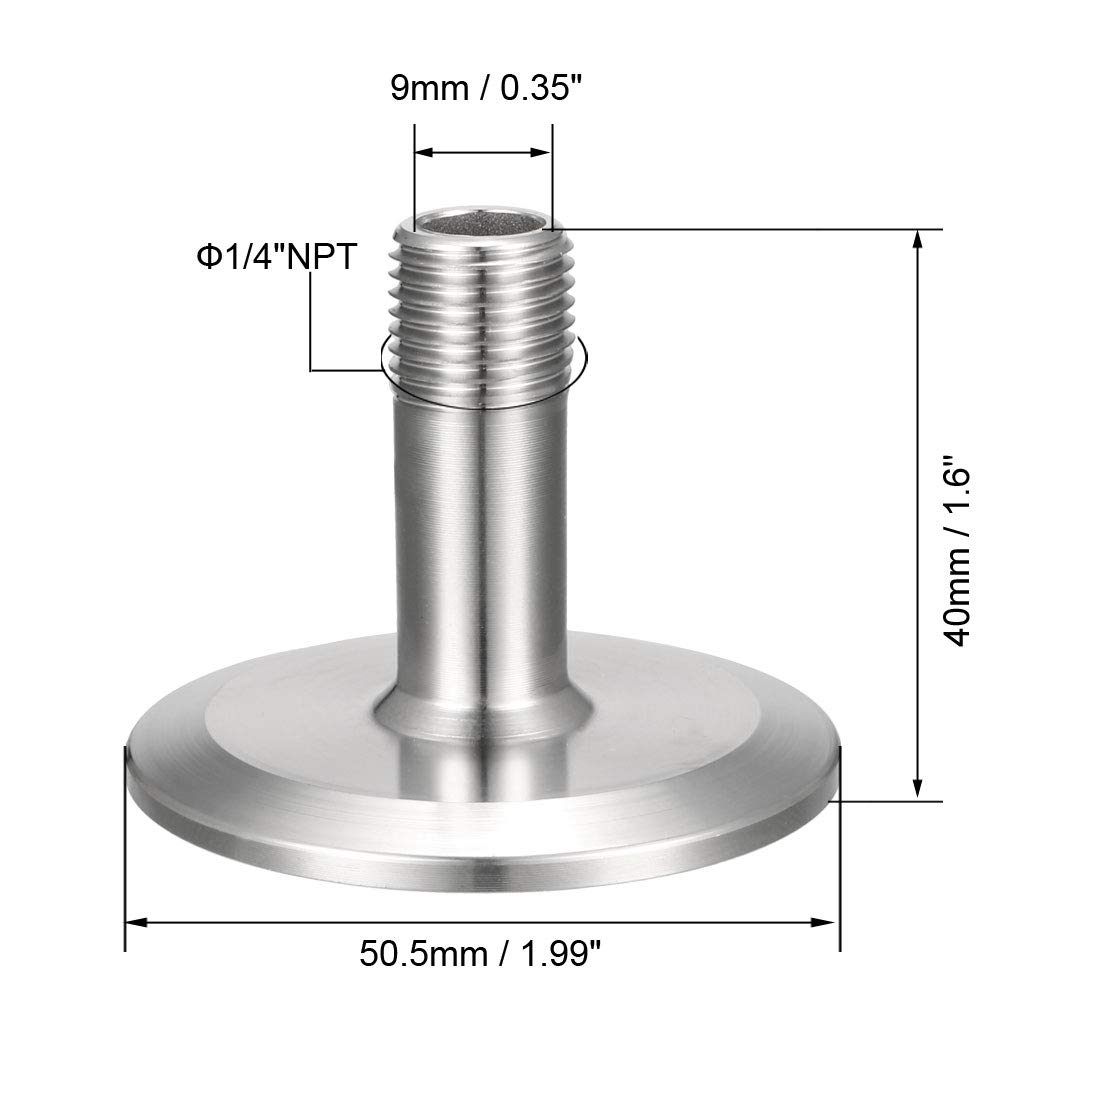 uxcell 1//4 inches NPT Male Threaded Pipe Fitting to TRI CLAMP OD 50.5mm Ferrule